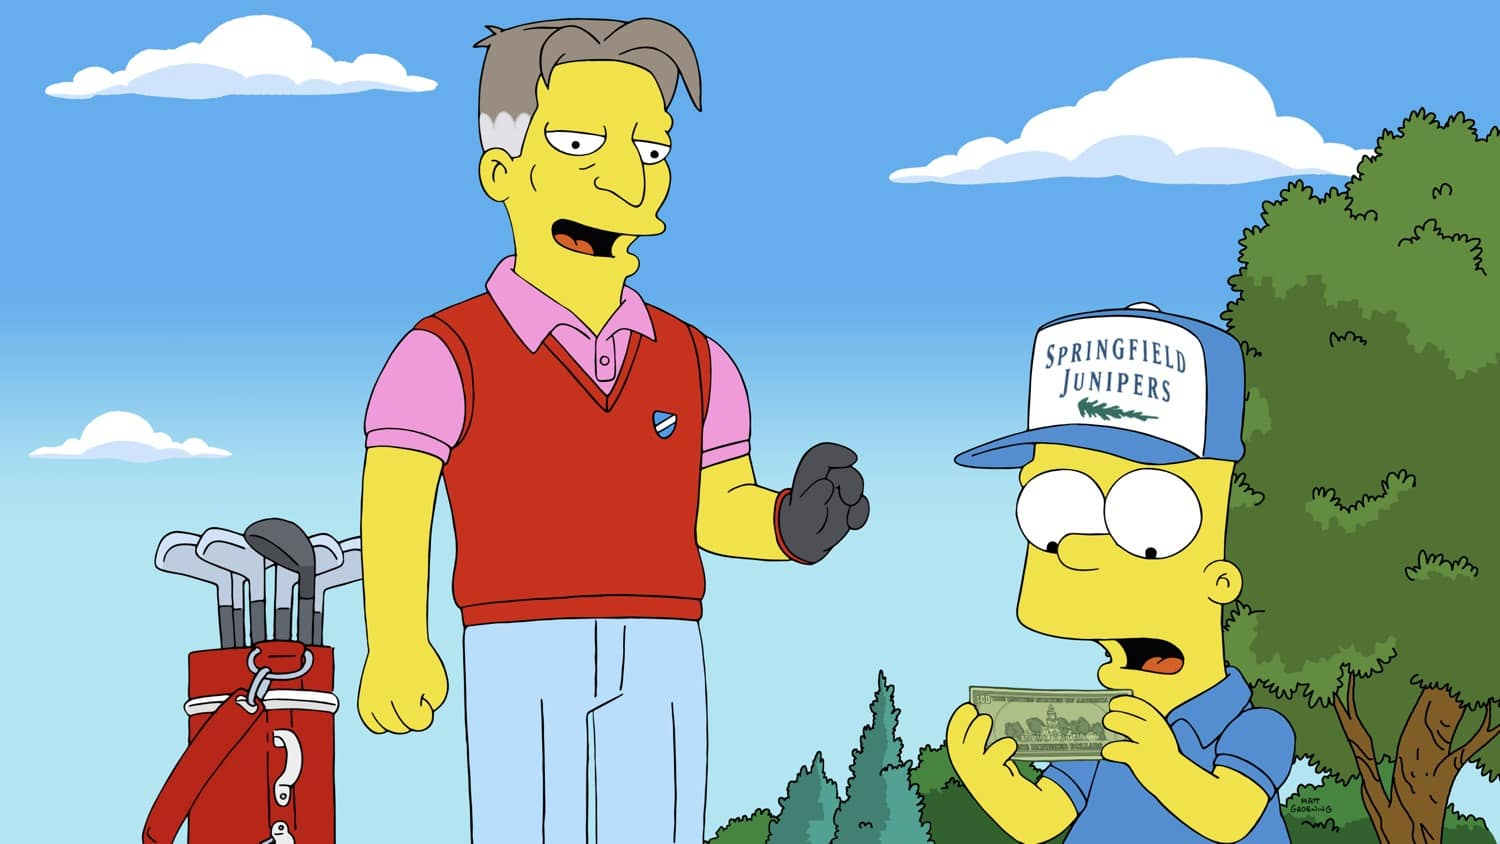 THE SIMPSONS Season 32 Episode 12 : Bart becomes a successful caddy, but Marge worries it is ruining his character in the Wad Goals episode of THE SIMPSONS airing Sunday, Feb. 28 (8:00-8:30 PM ET/PT) on FOX. Guest voice Stephen Root. THE SIMPSONS © 2021 by 20th Television.